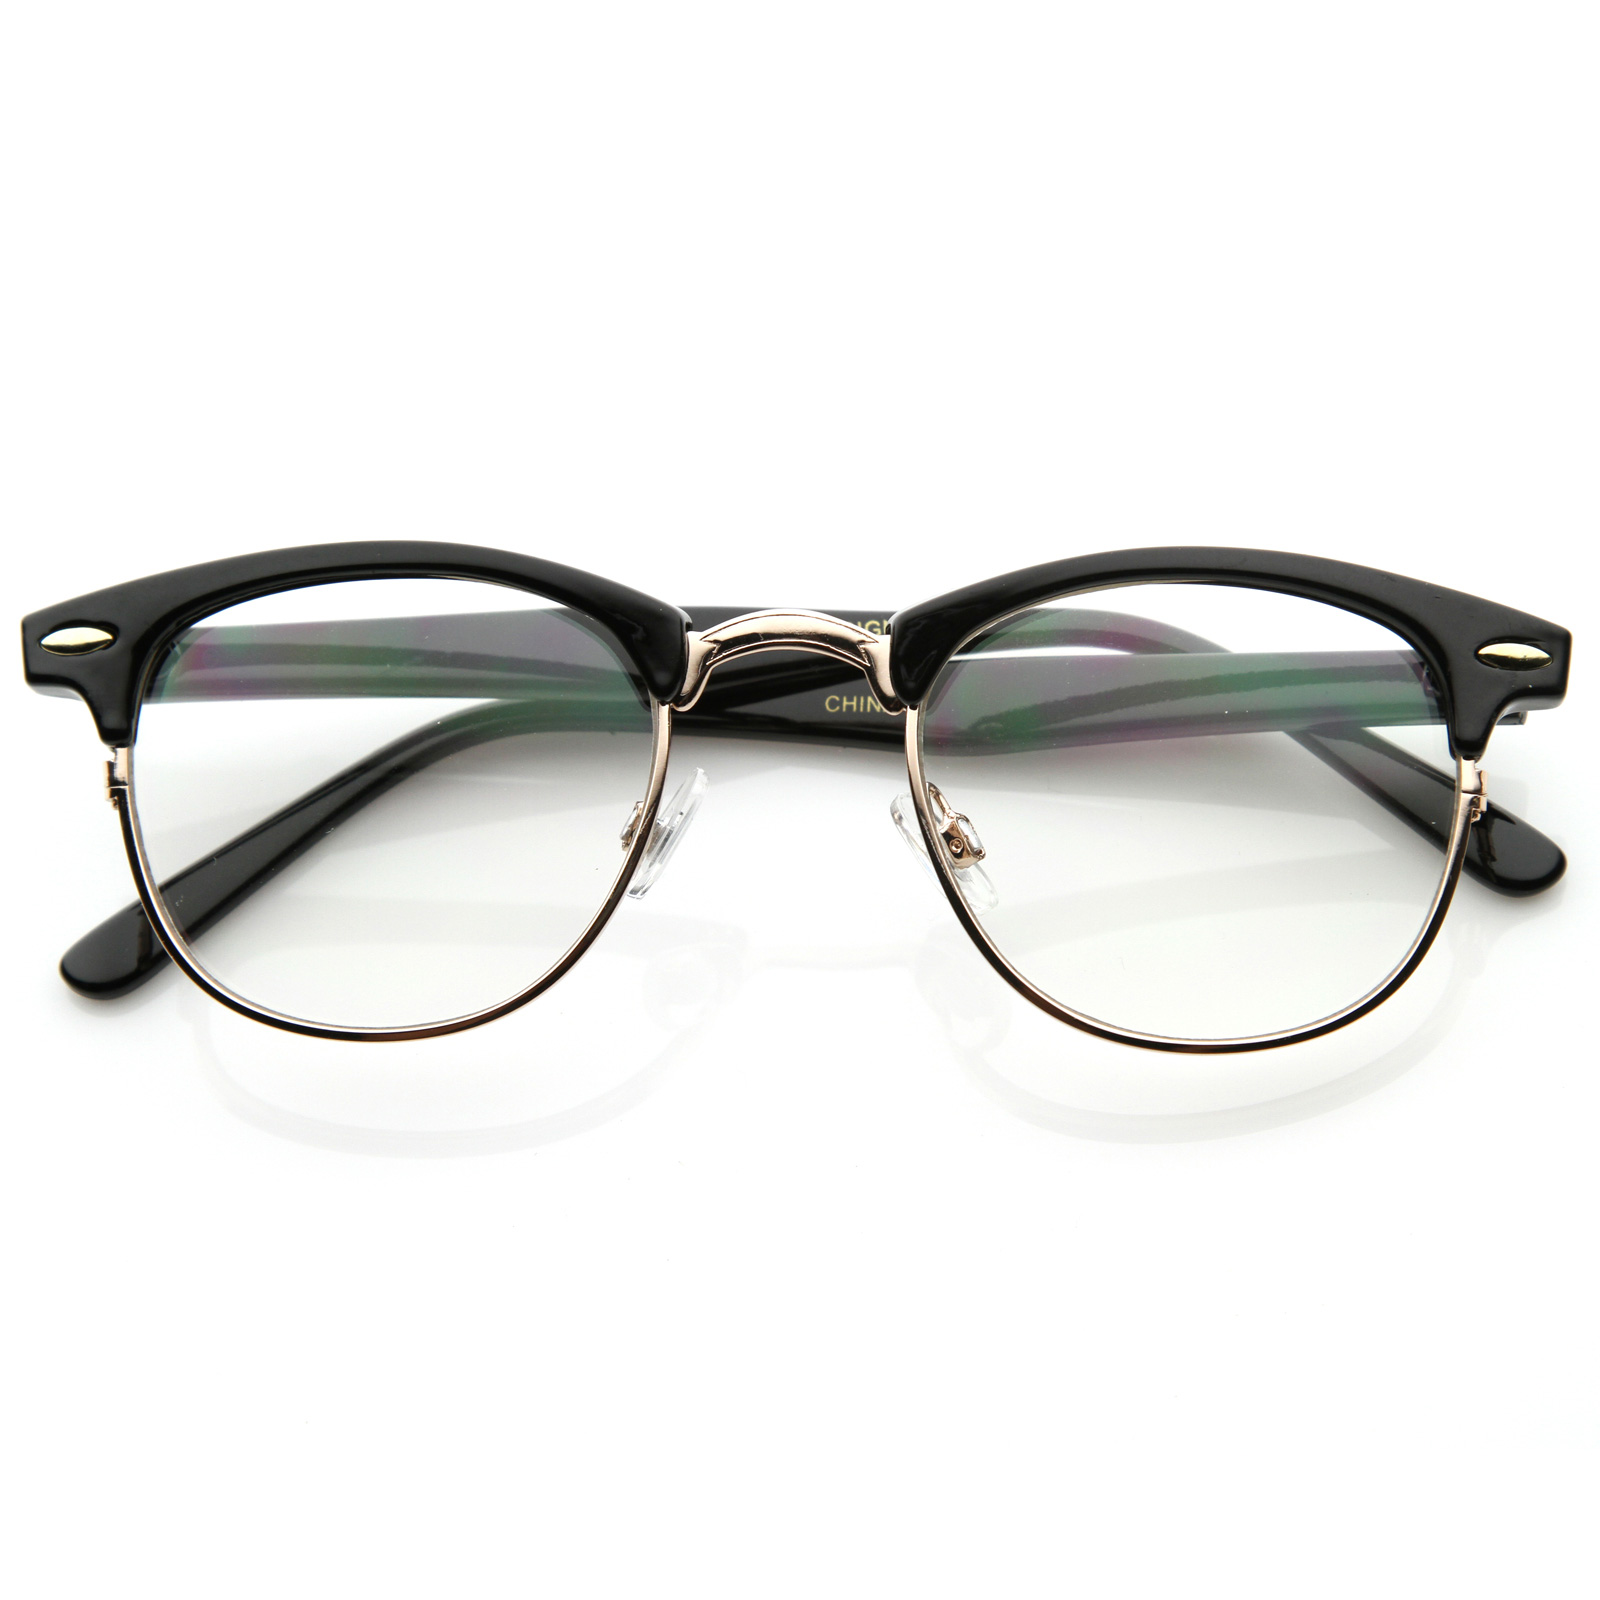 Diesel Half Frame Glasses : New Original RX Optical Classical Clear Lens Half Frame ...